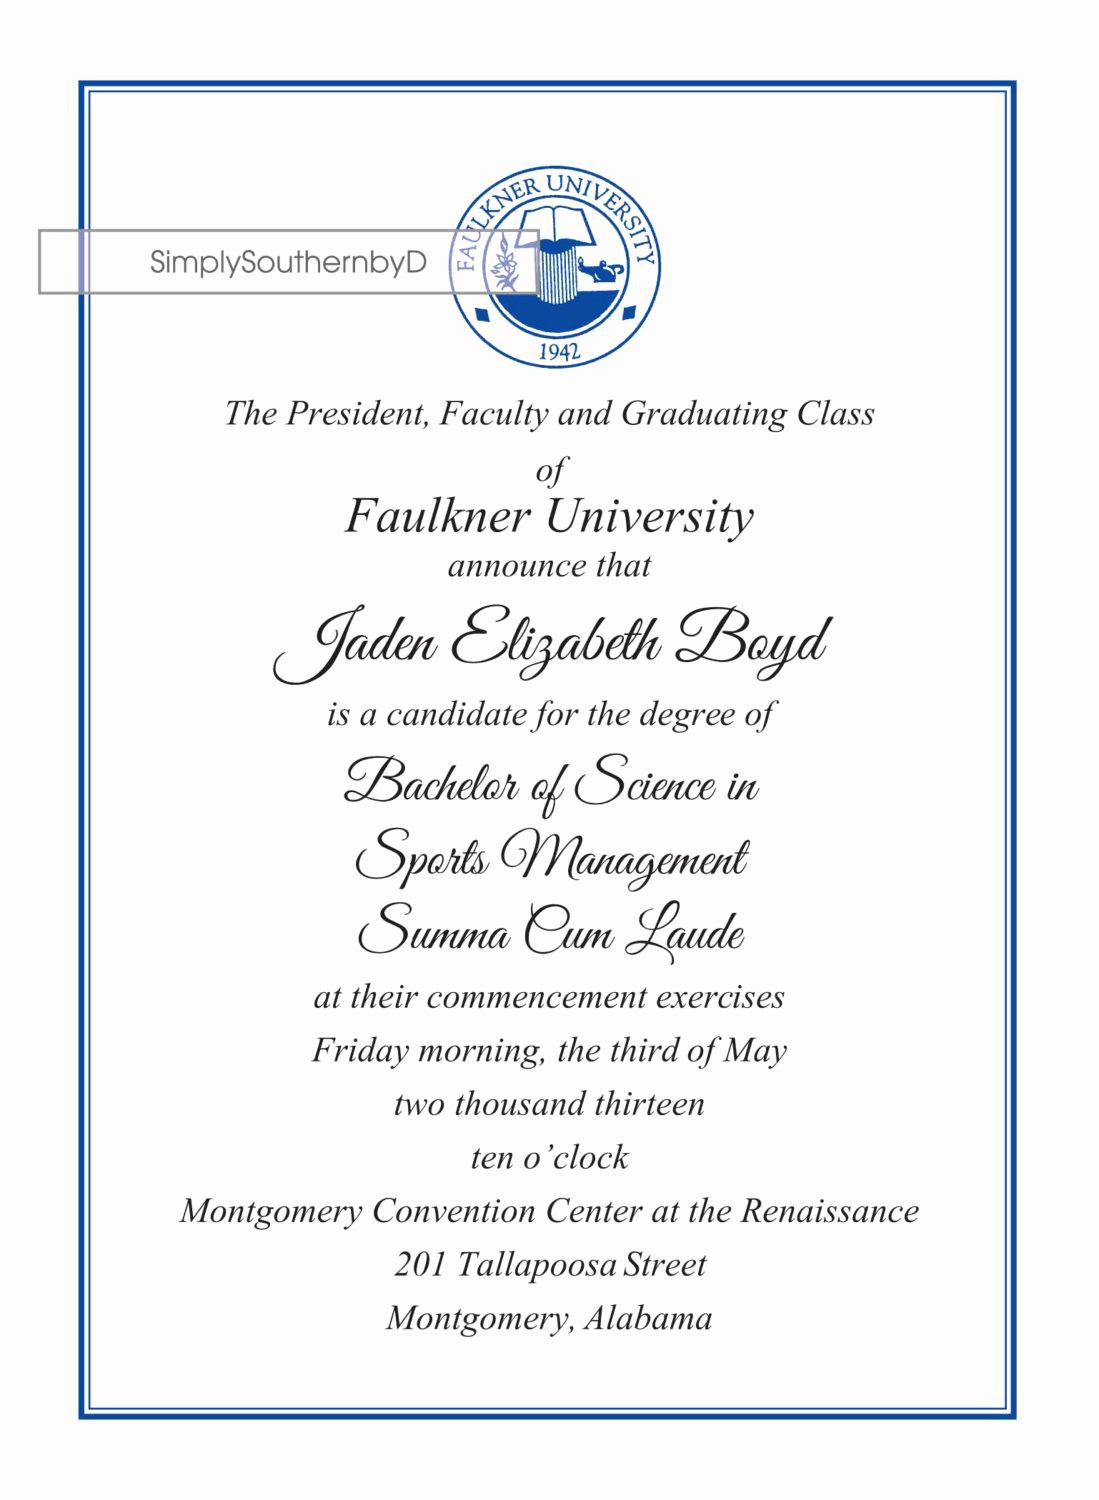 Phd Graduation Invitation Wording Inspirational College Graduation Announcements by Simplysouthernbyd On Etsy